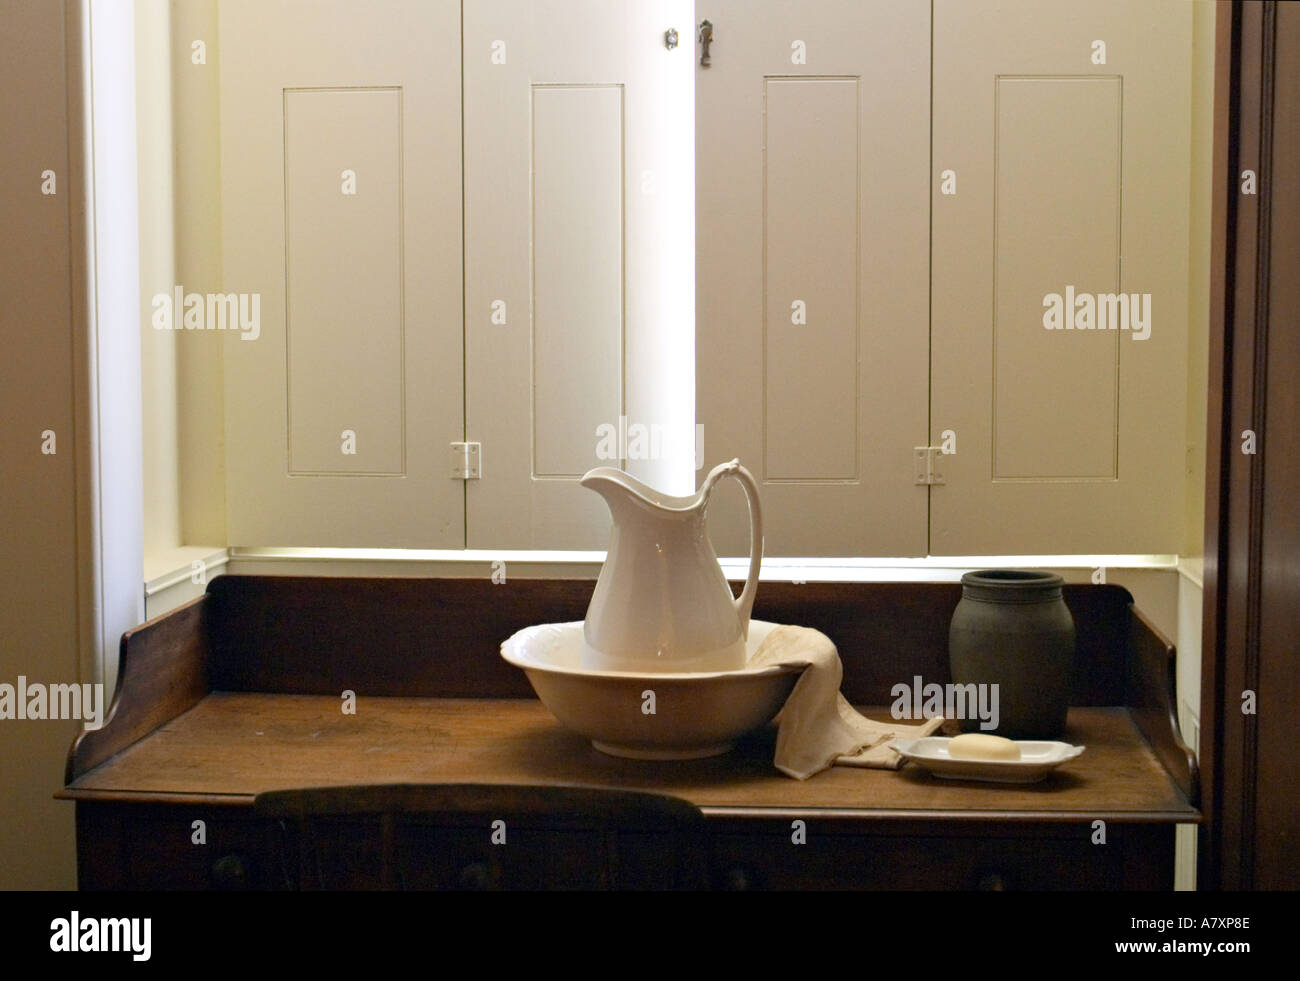 ILLINOIS Springfield Old State Capitol statehouse from 1839 to 1876 wash basin pitcher desk shutter - Stock Image